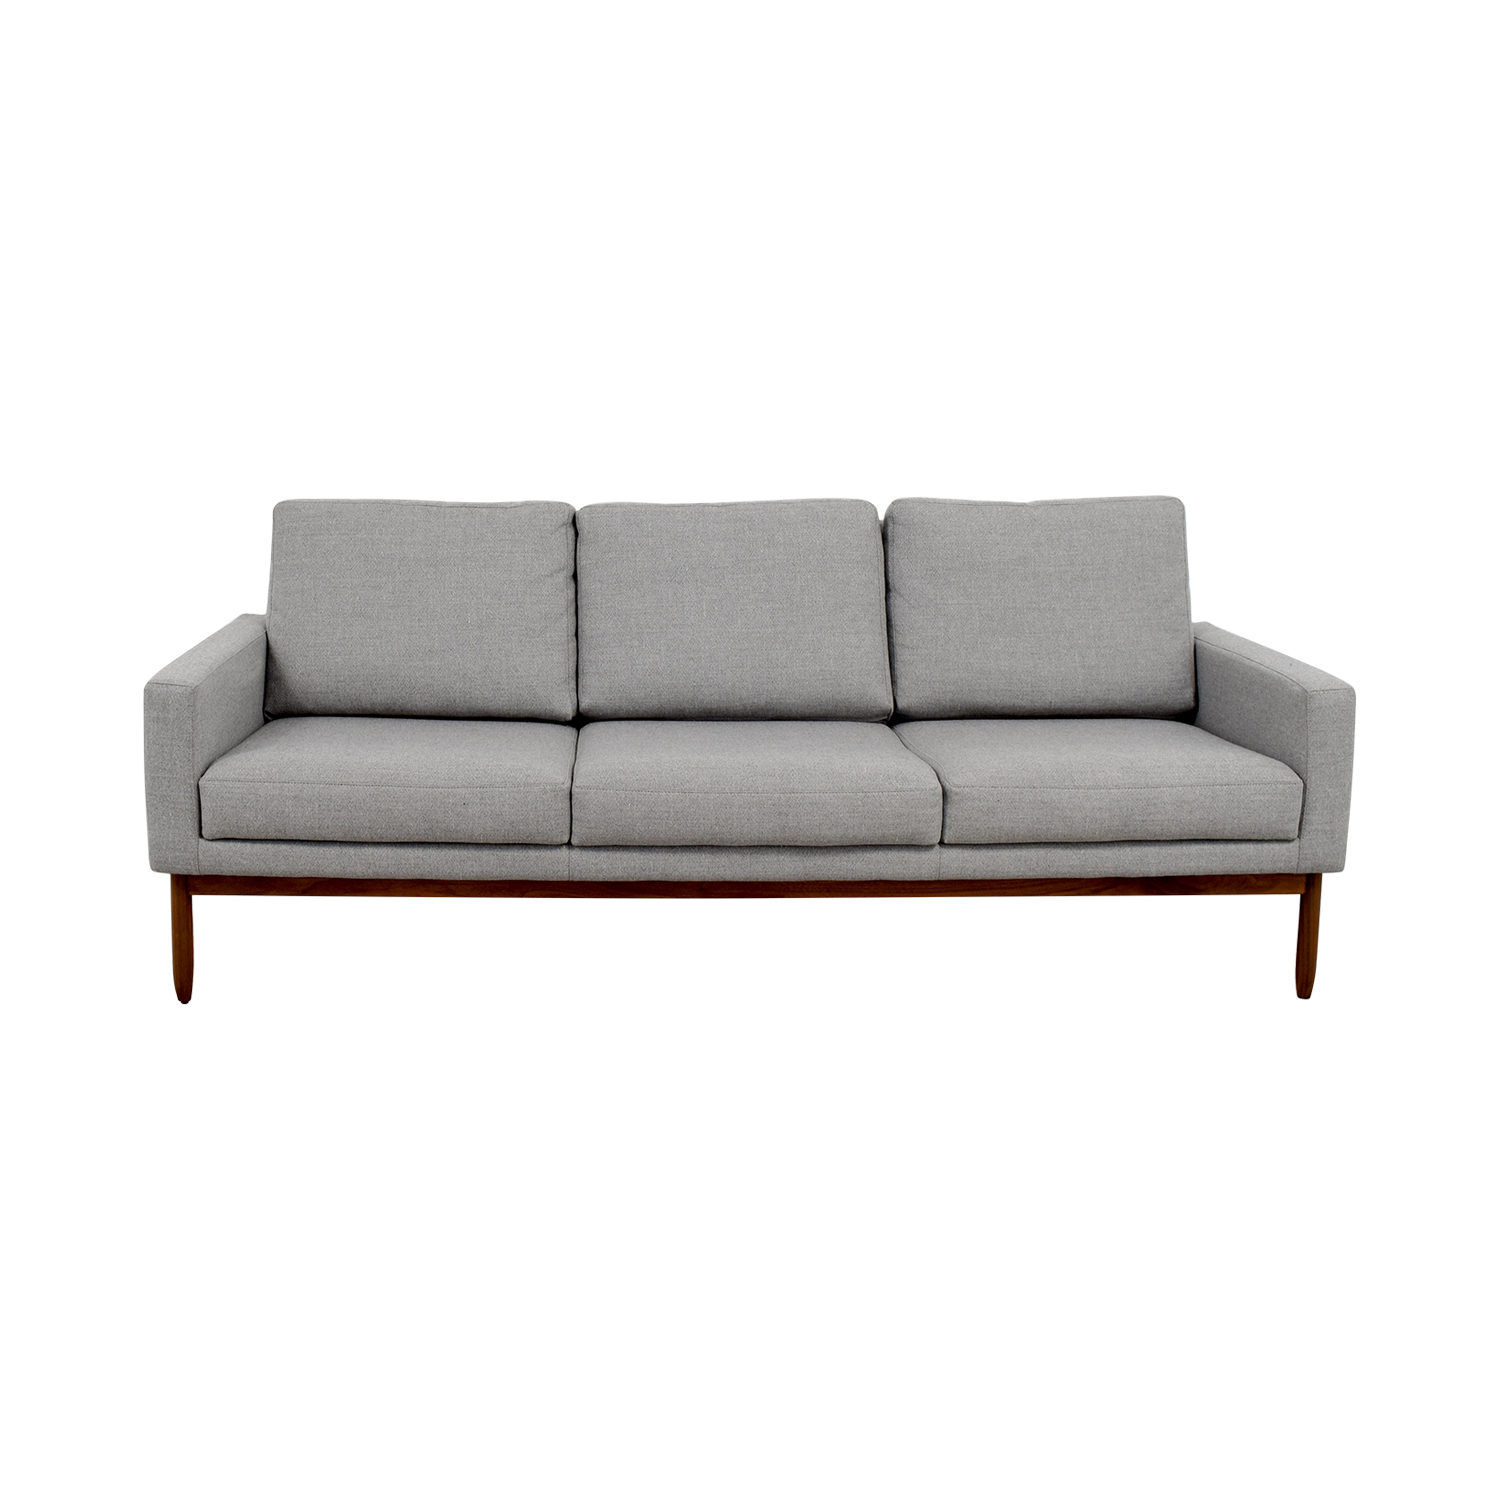 59% OFF   Design Within Reach Design Within Reach Raleigh Light Grey Ducale  Wool Sofa / Sofas